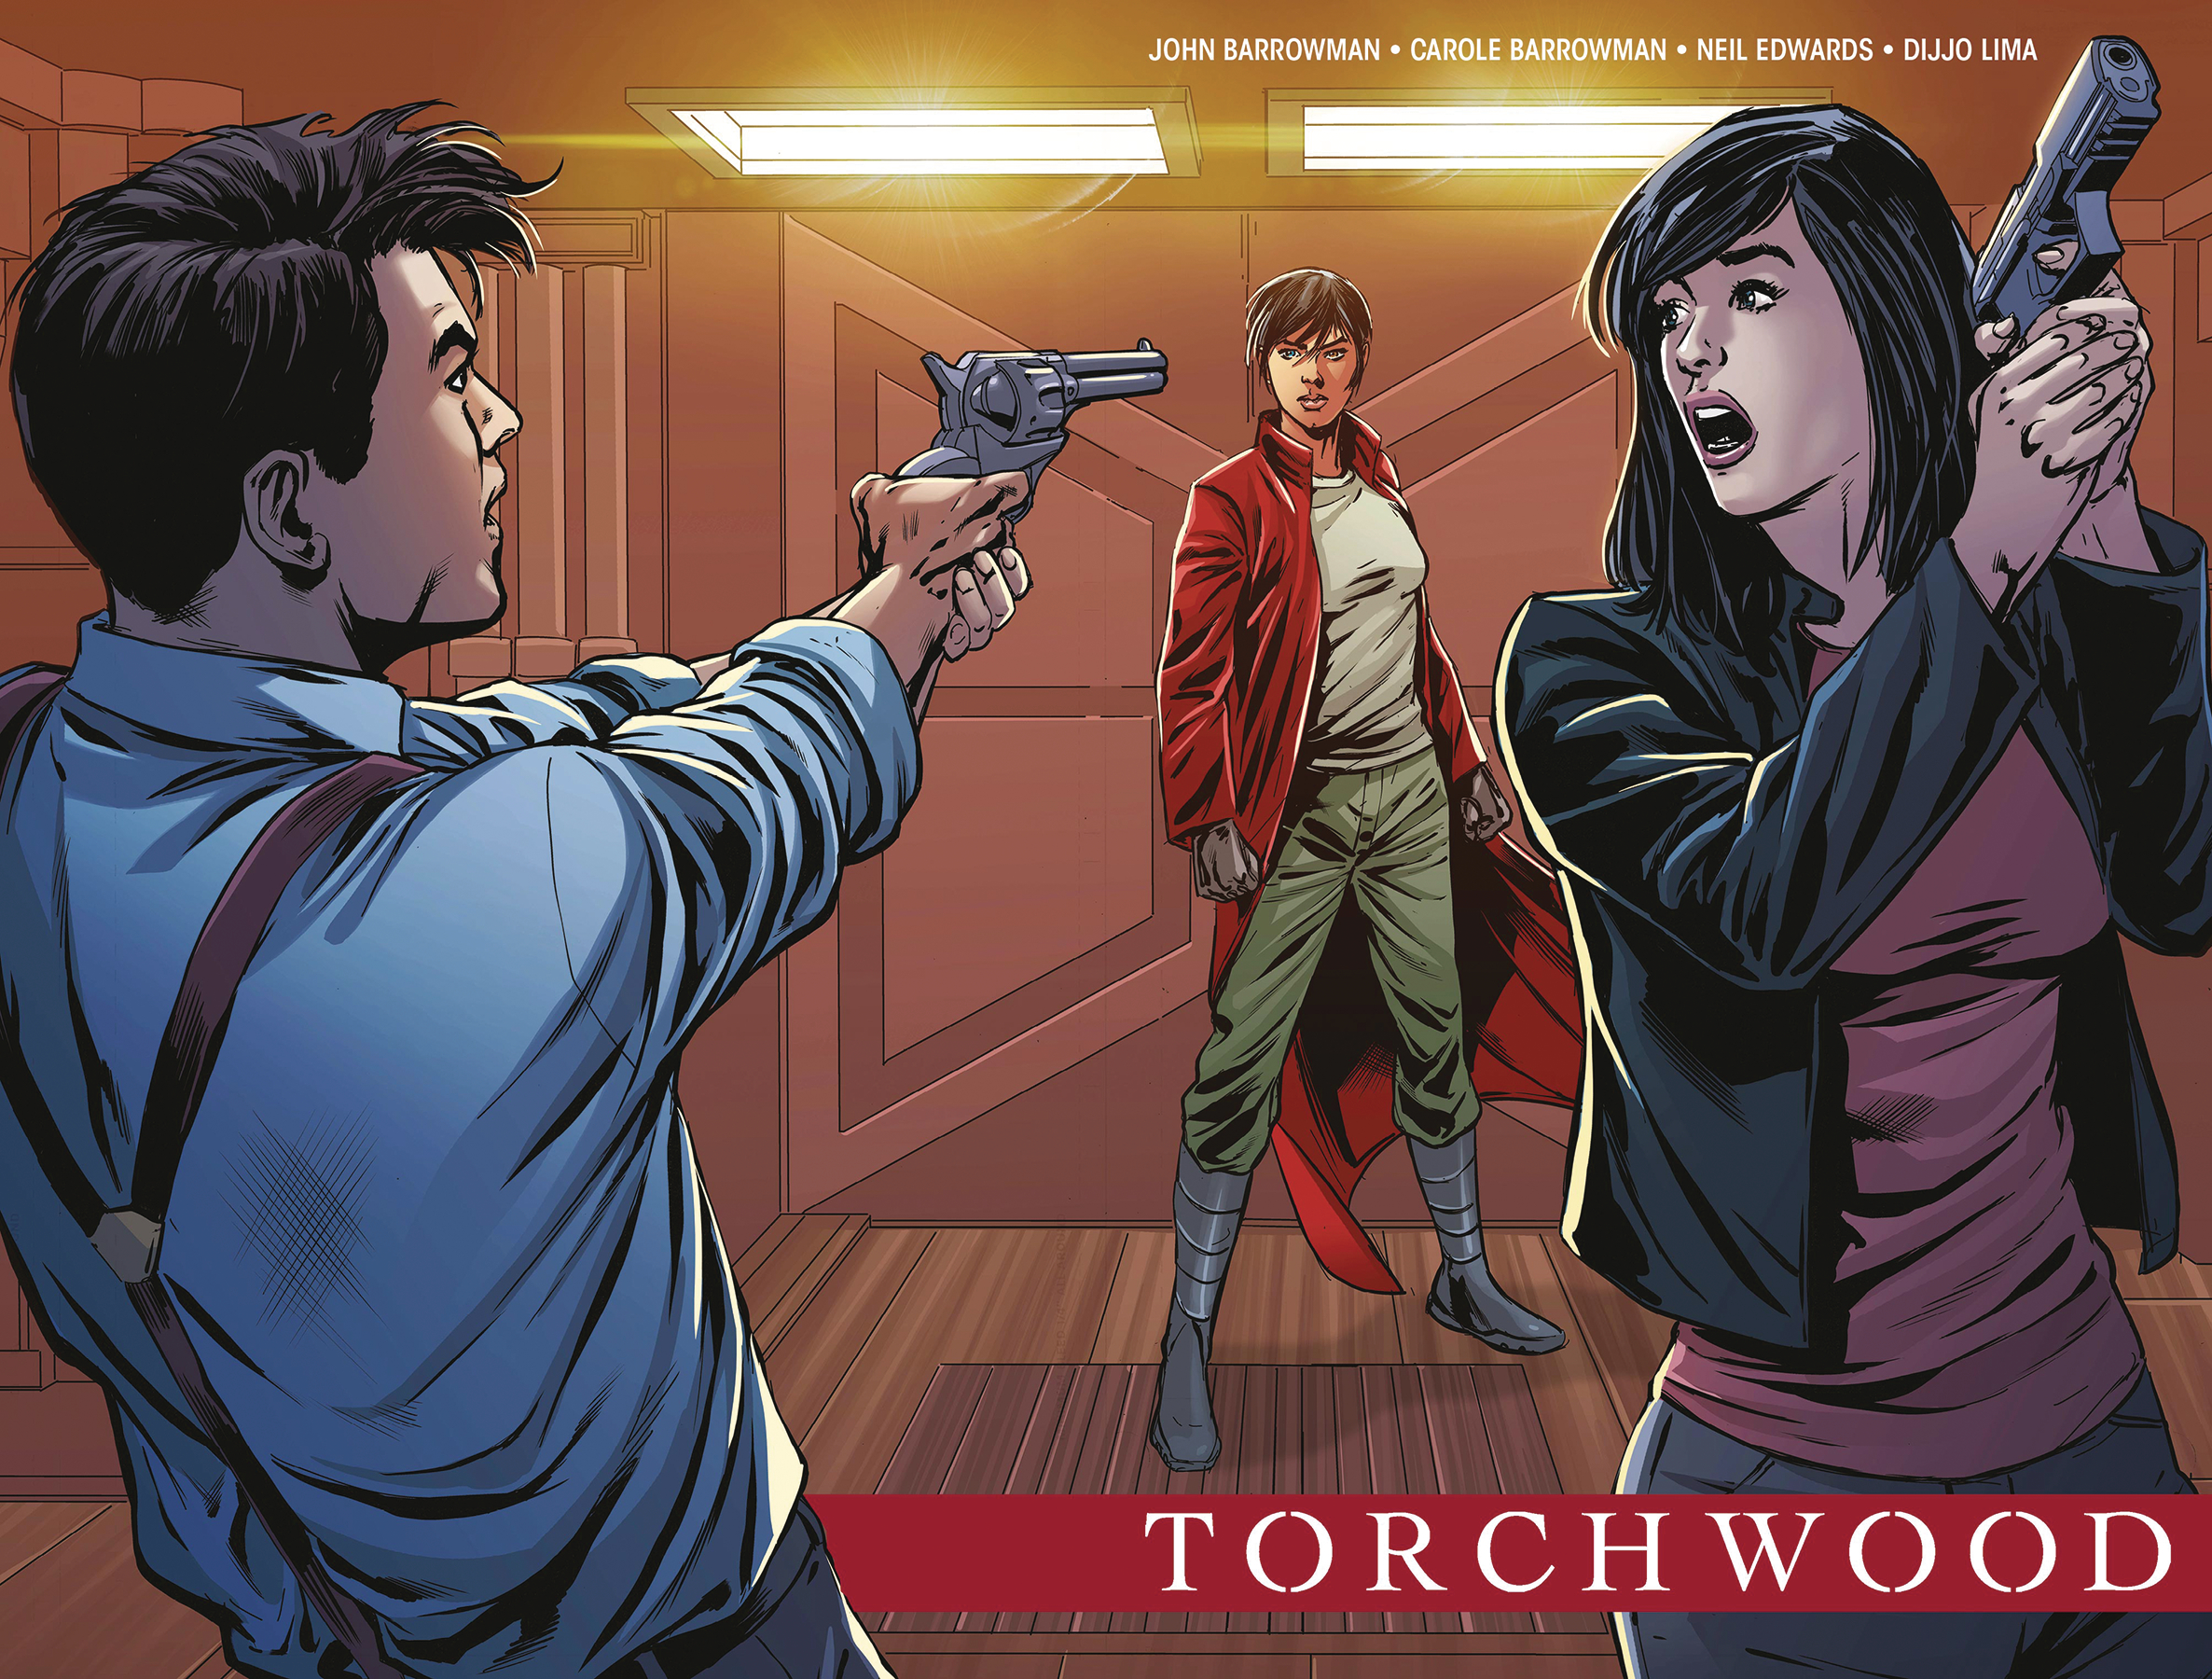 TORCHWOOD THE CULLING #1